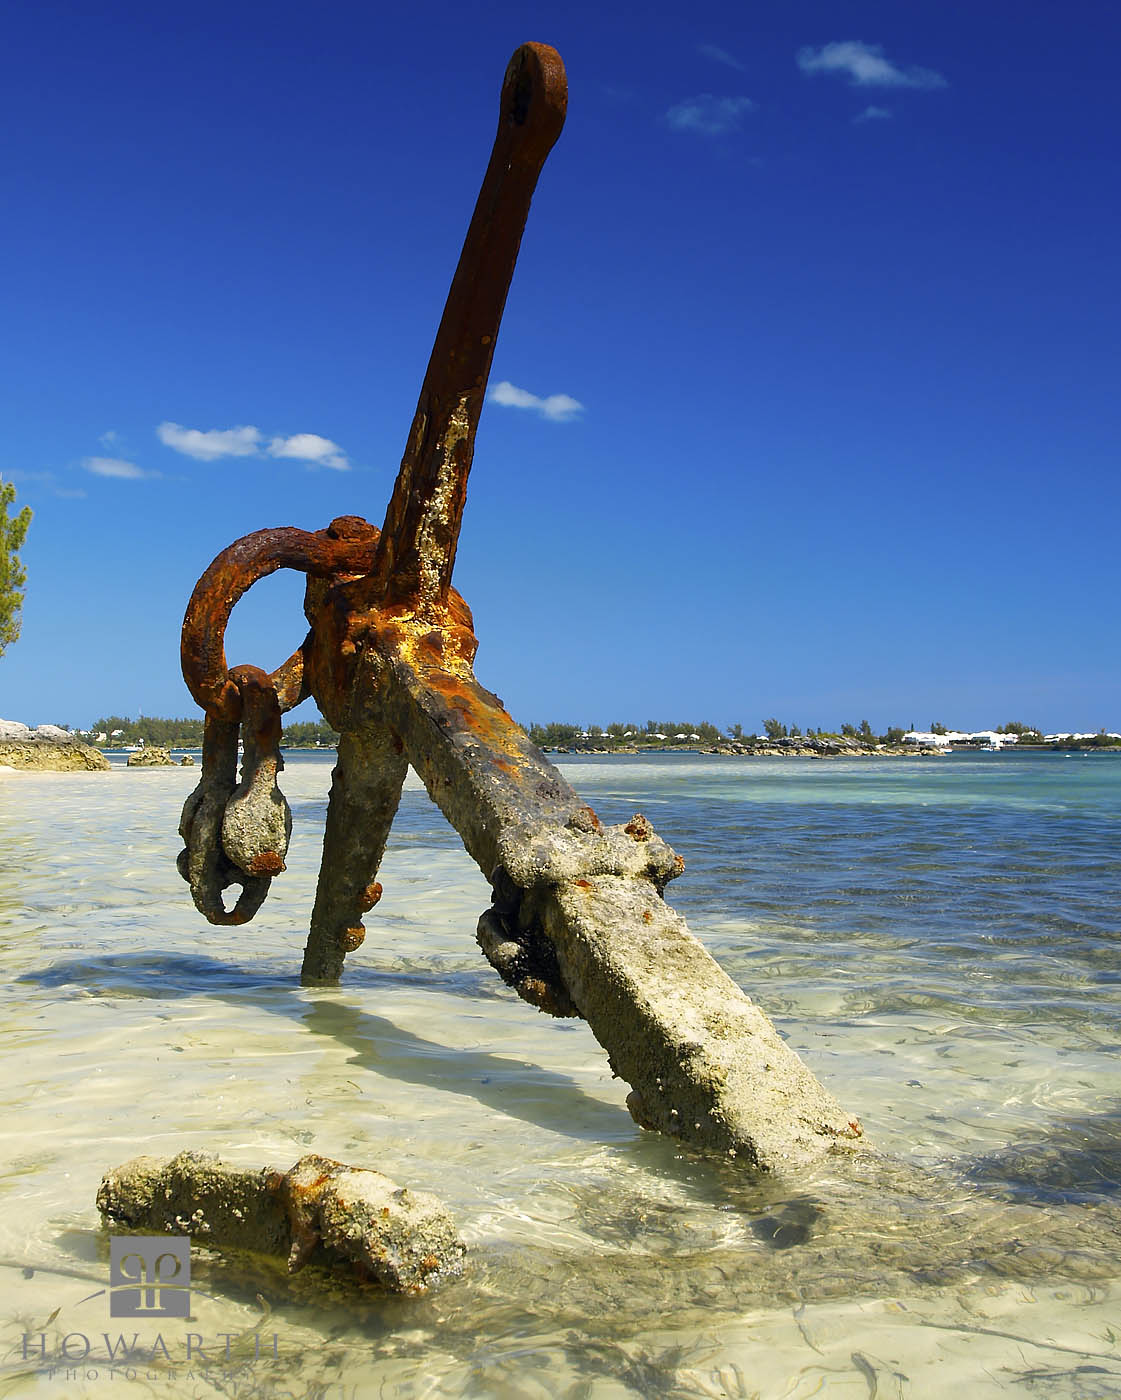 An old, large, ship anchor sits up on the beach outside of Teddy Tucker's house